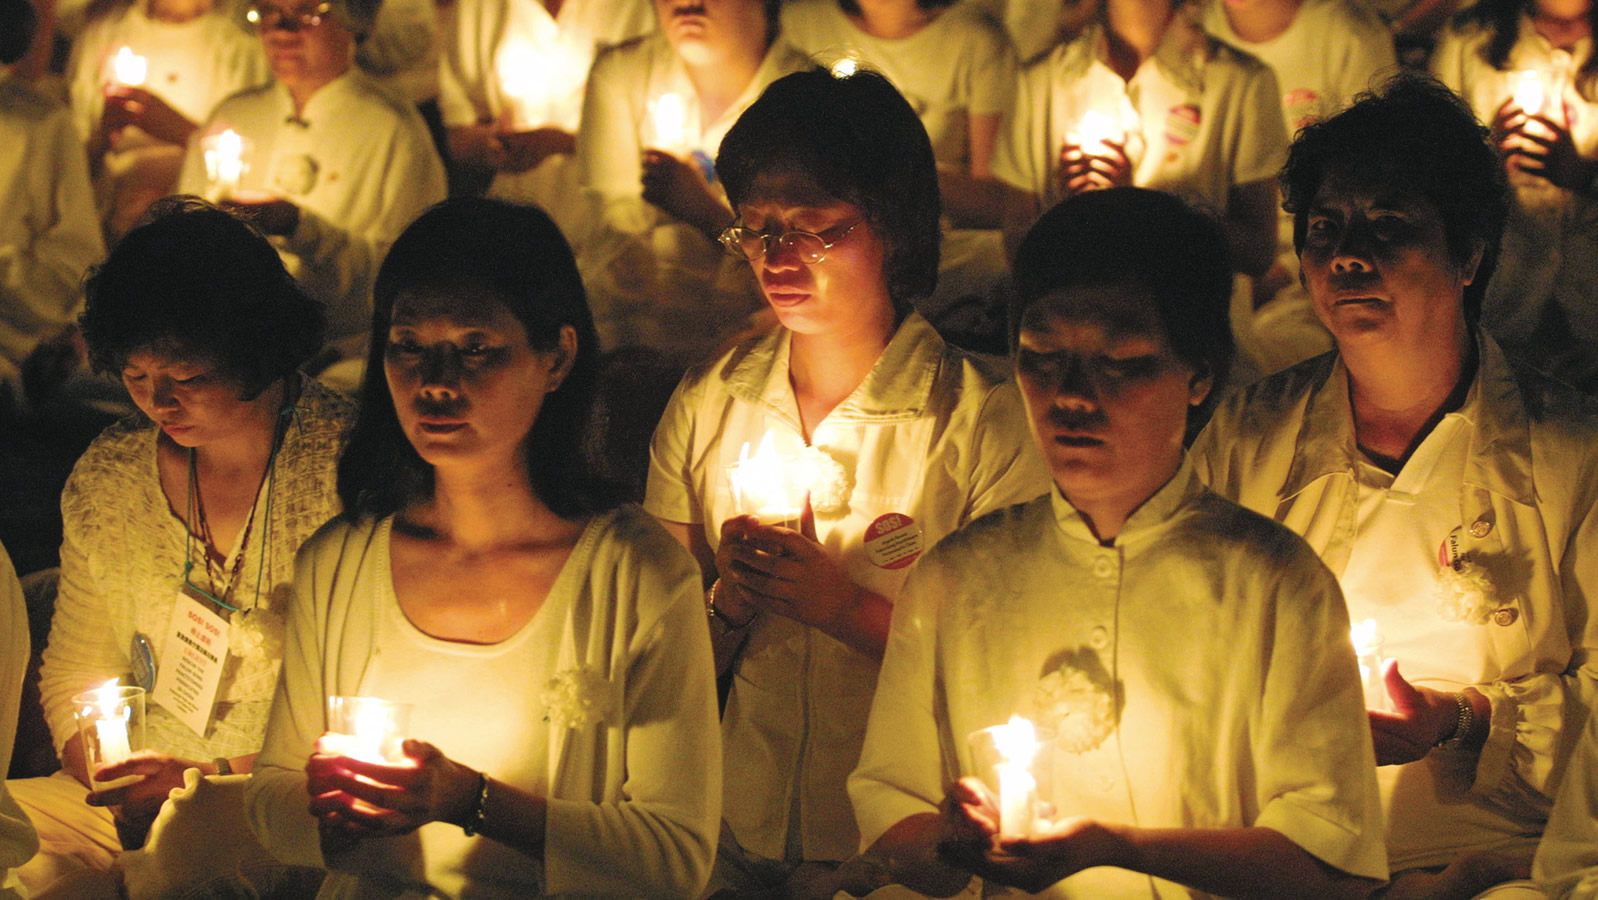 Chinese Women Wearing White and Holding Candles